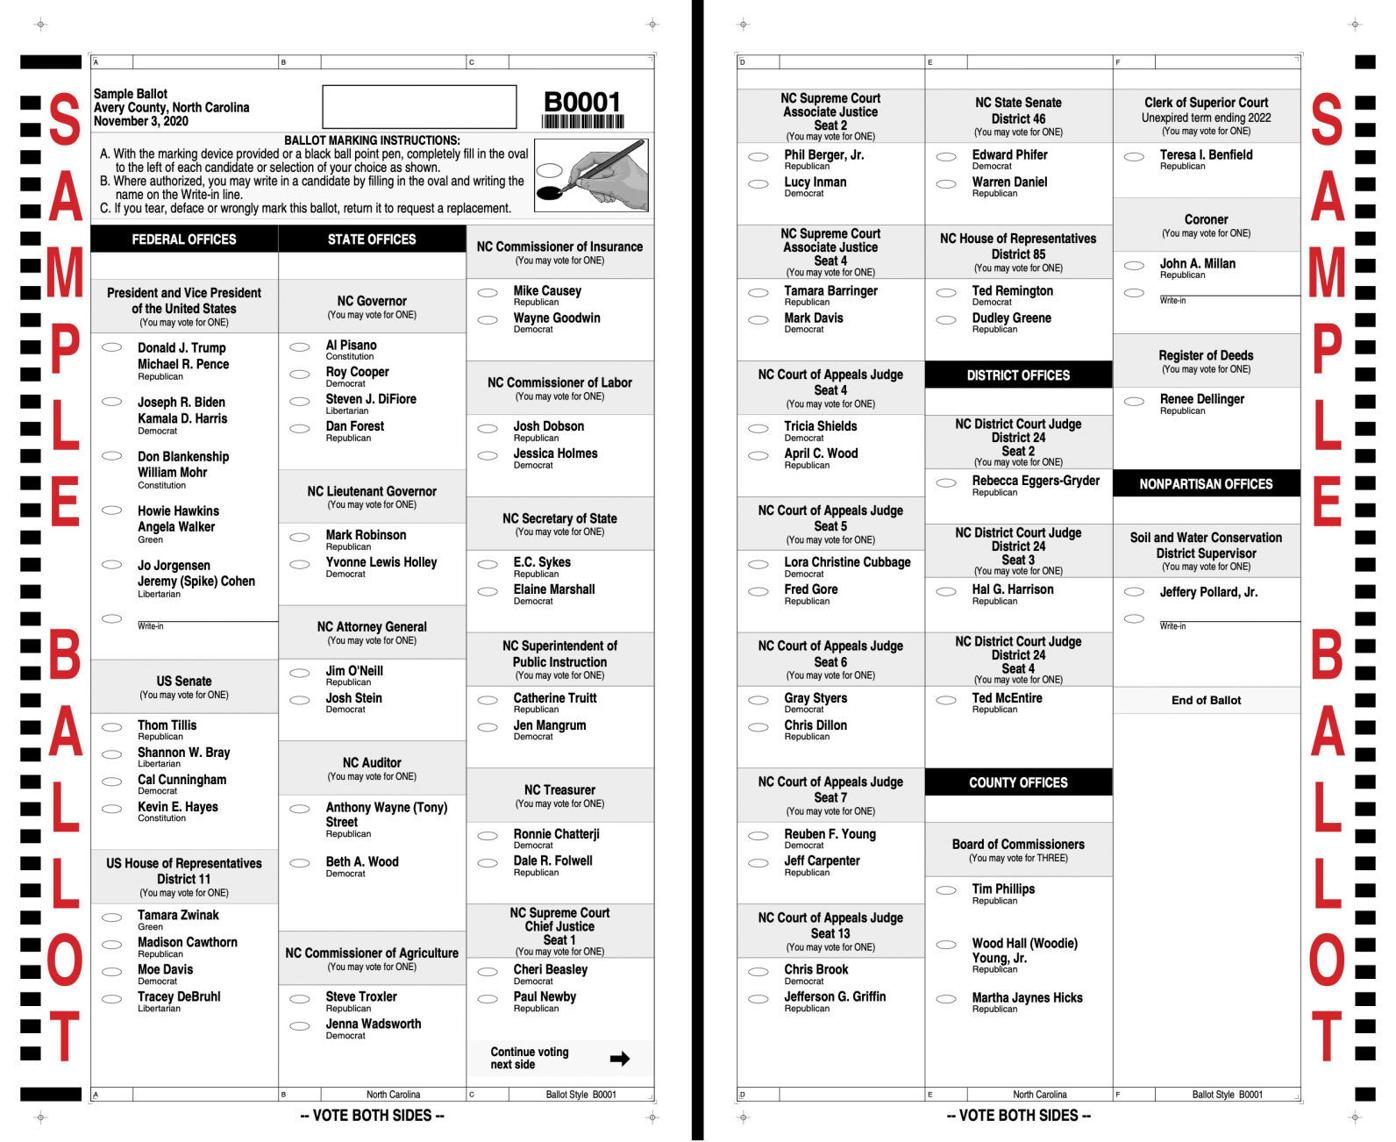 2020 General Election Sample Ballot Avery County